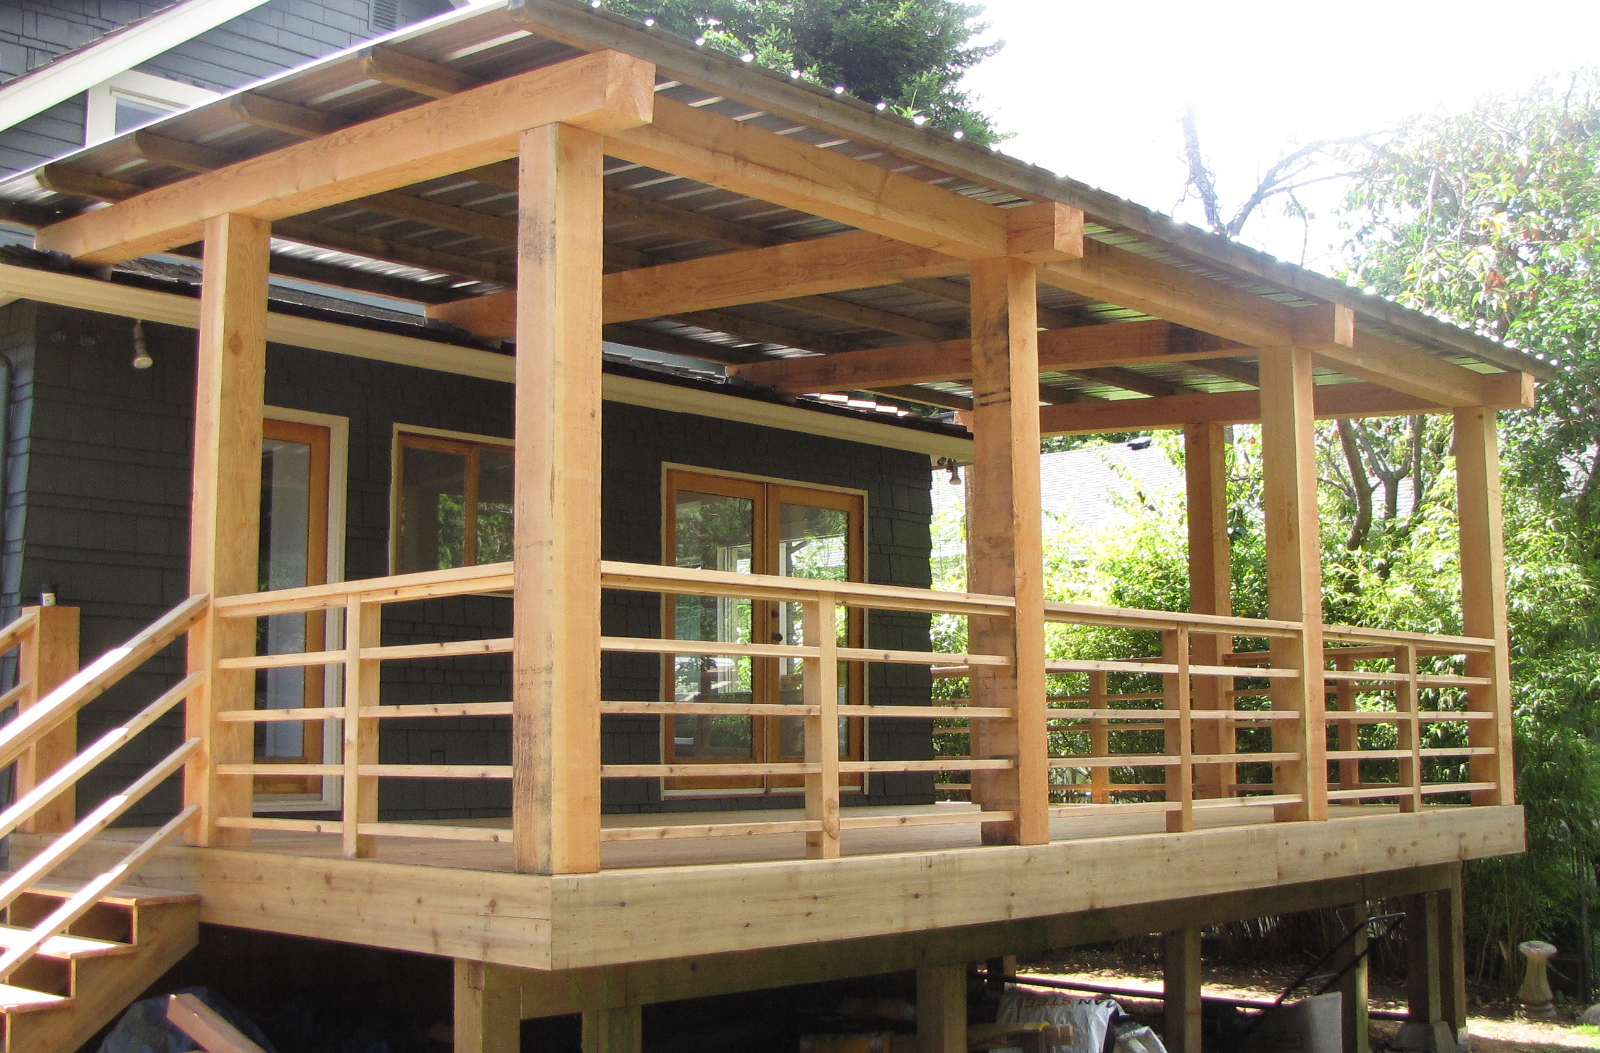 Deck building deck building images for Ideas for decks designs